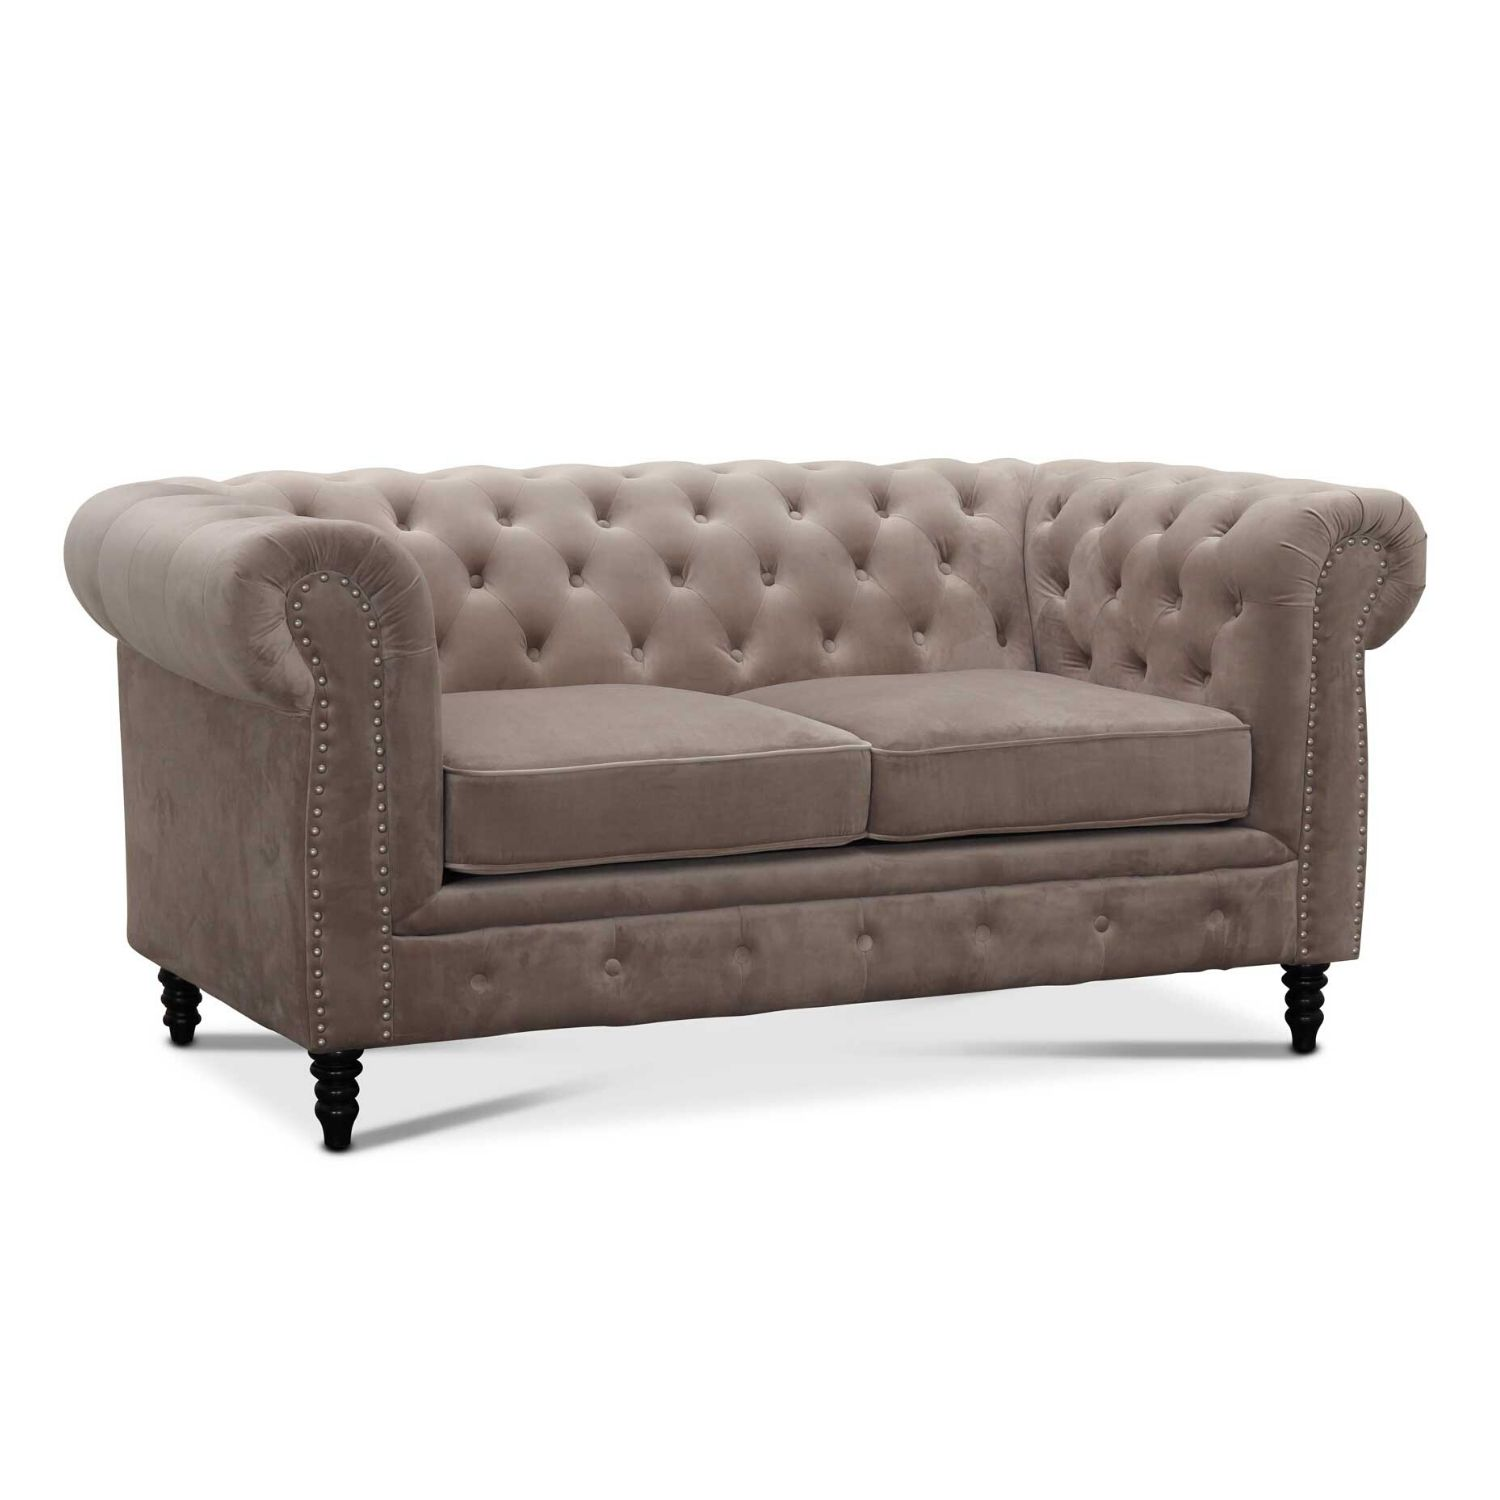 Image of   HAGA Cambridge sofa - lysegråt fløjl stof, 2 pers.